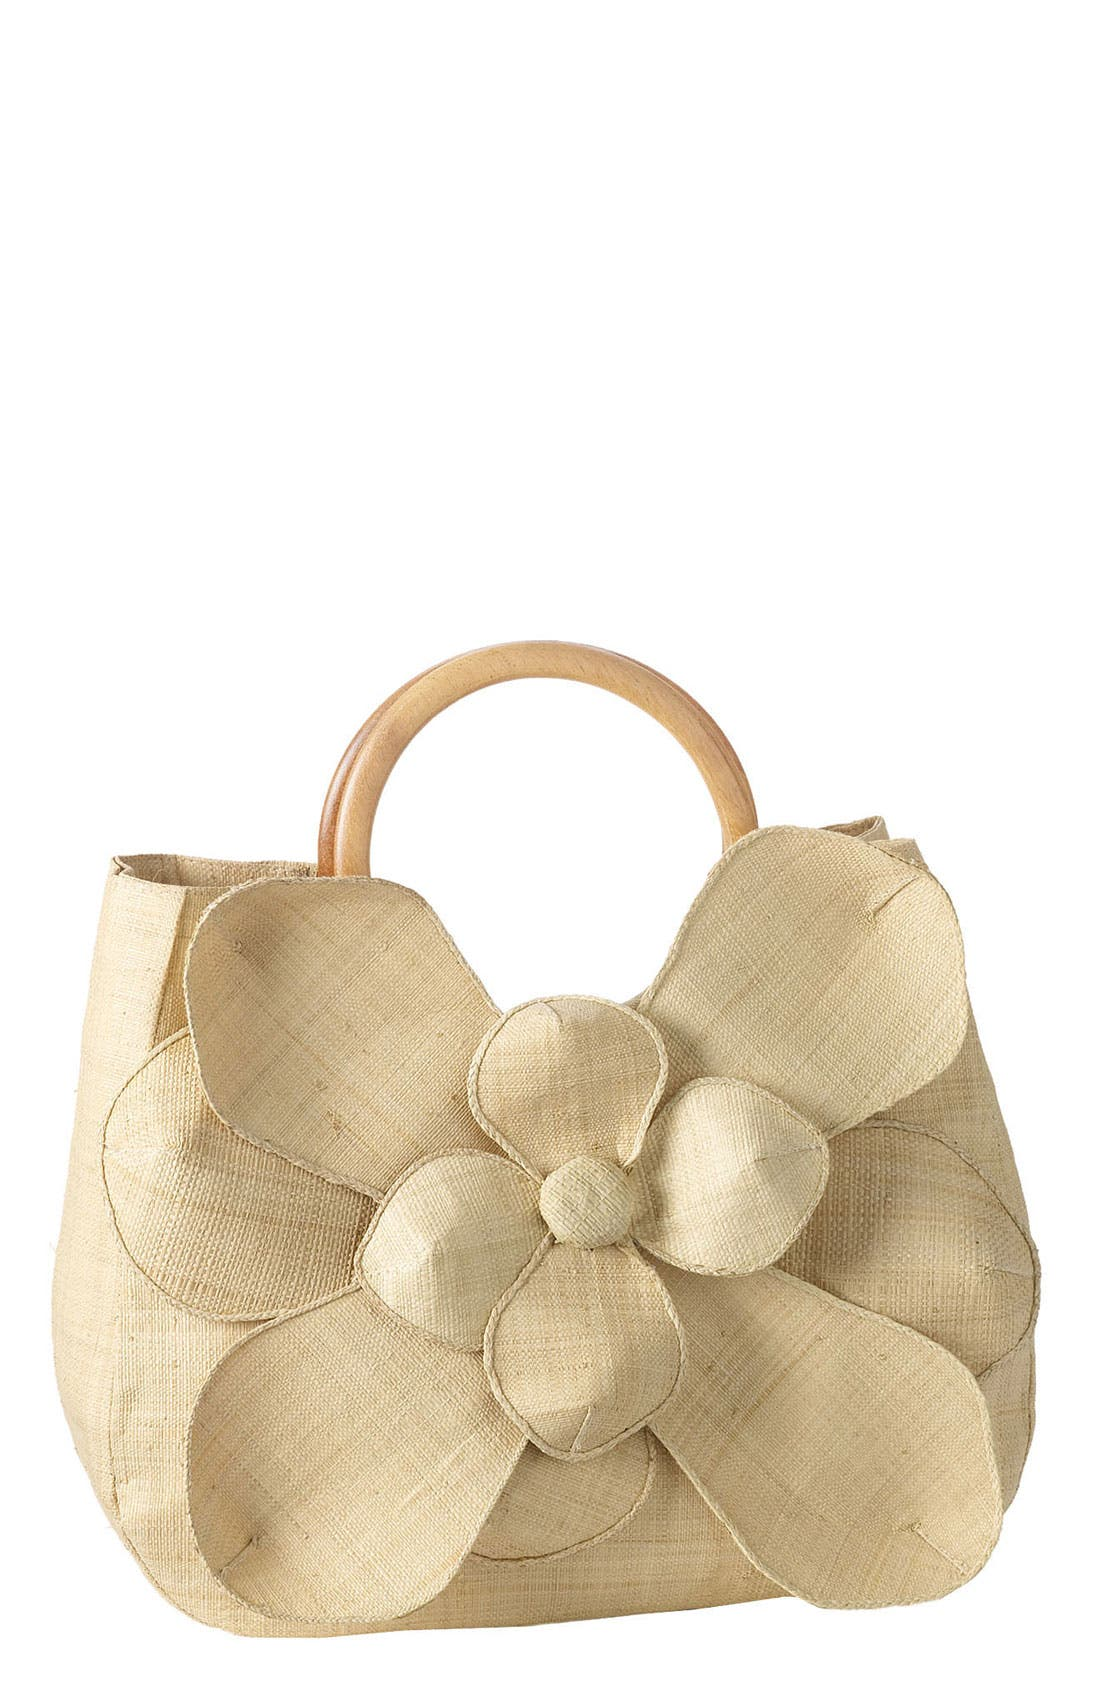 Main Image - Mar y Sol 'Guadalupe' Straw Shopper